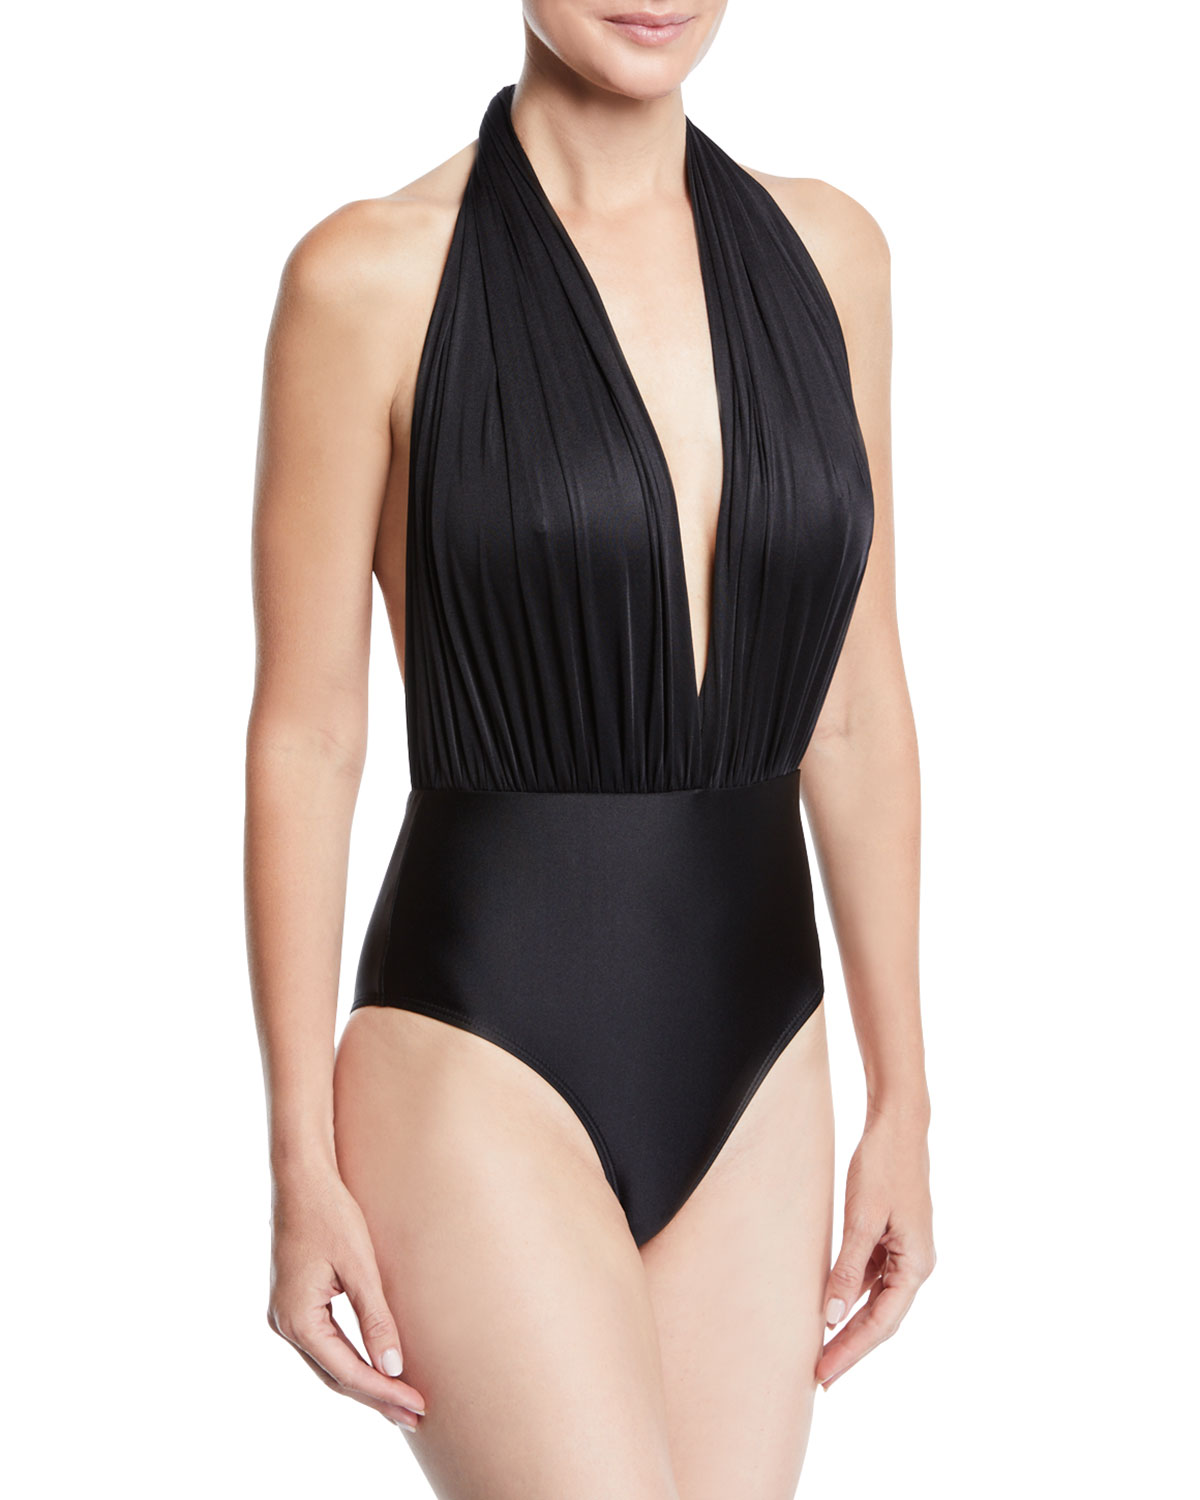 ÁGUA DE COCO Liso Halter Tie-Neck One-Piece Swimsuit in Black